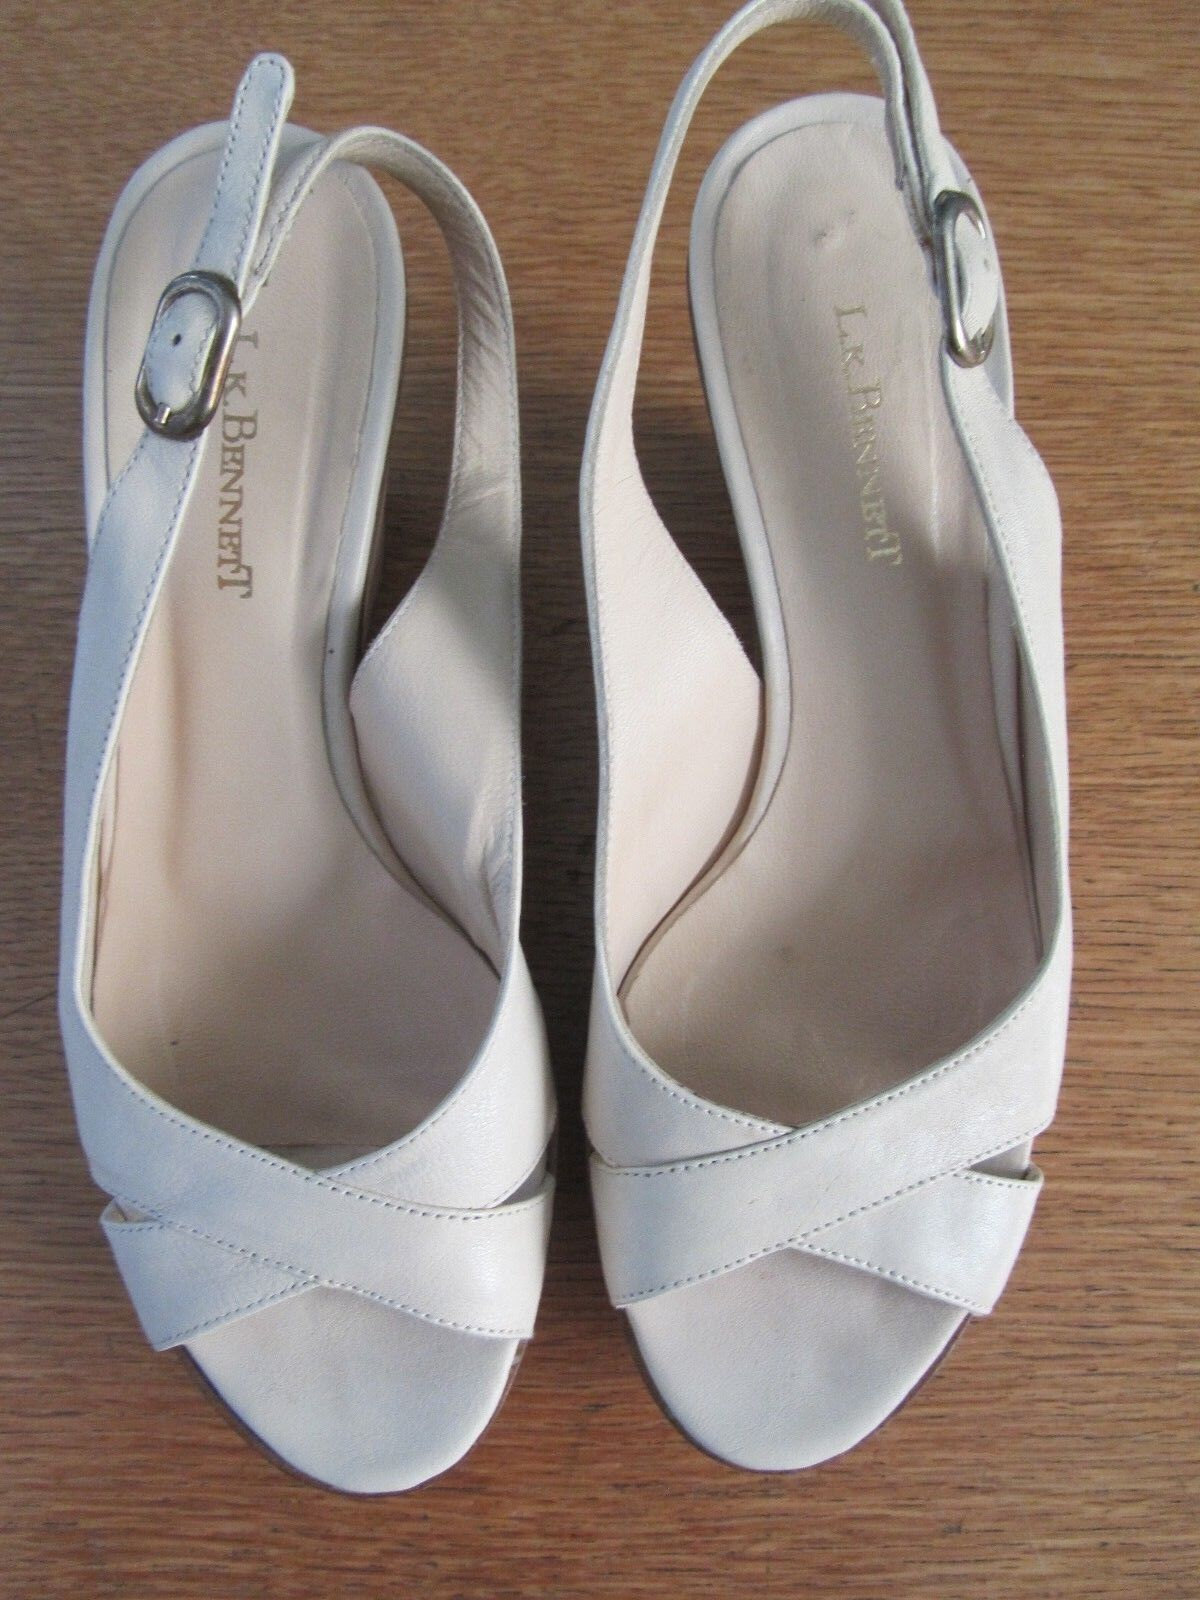 LK BENNET CLAUDE CREAM LEATHER WEDGE Schuhe/SANDALS  EU36 UK4  Schuhe/SANDALS 9cm HEELS e4bd7d